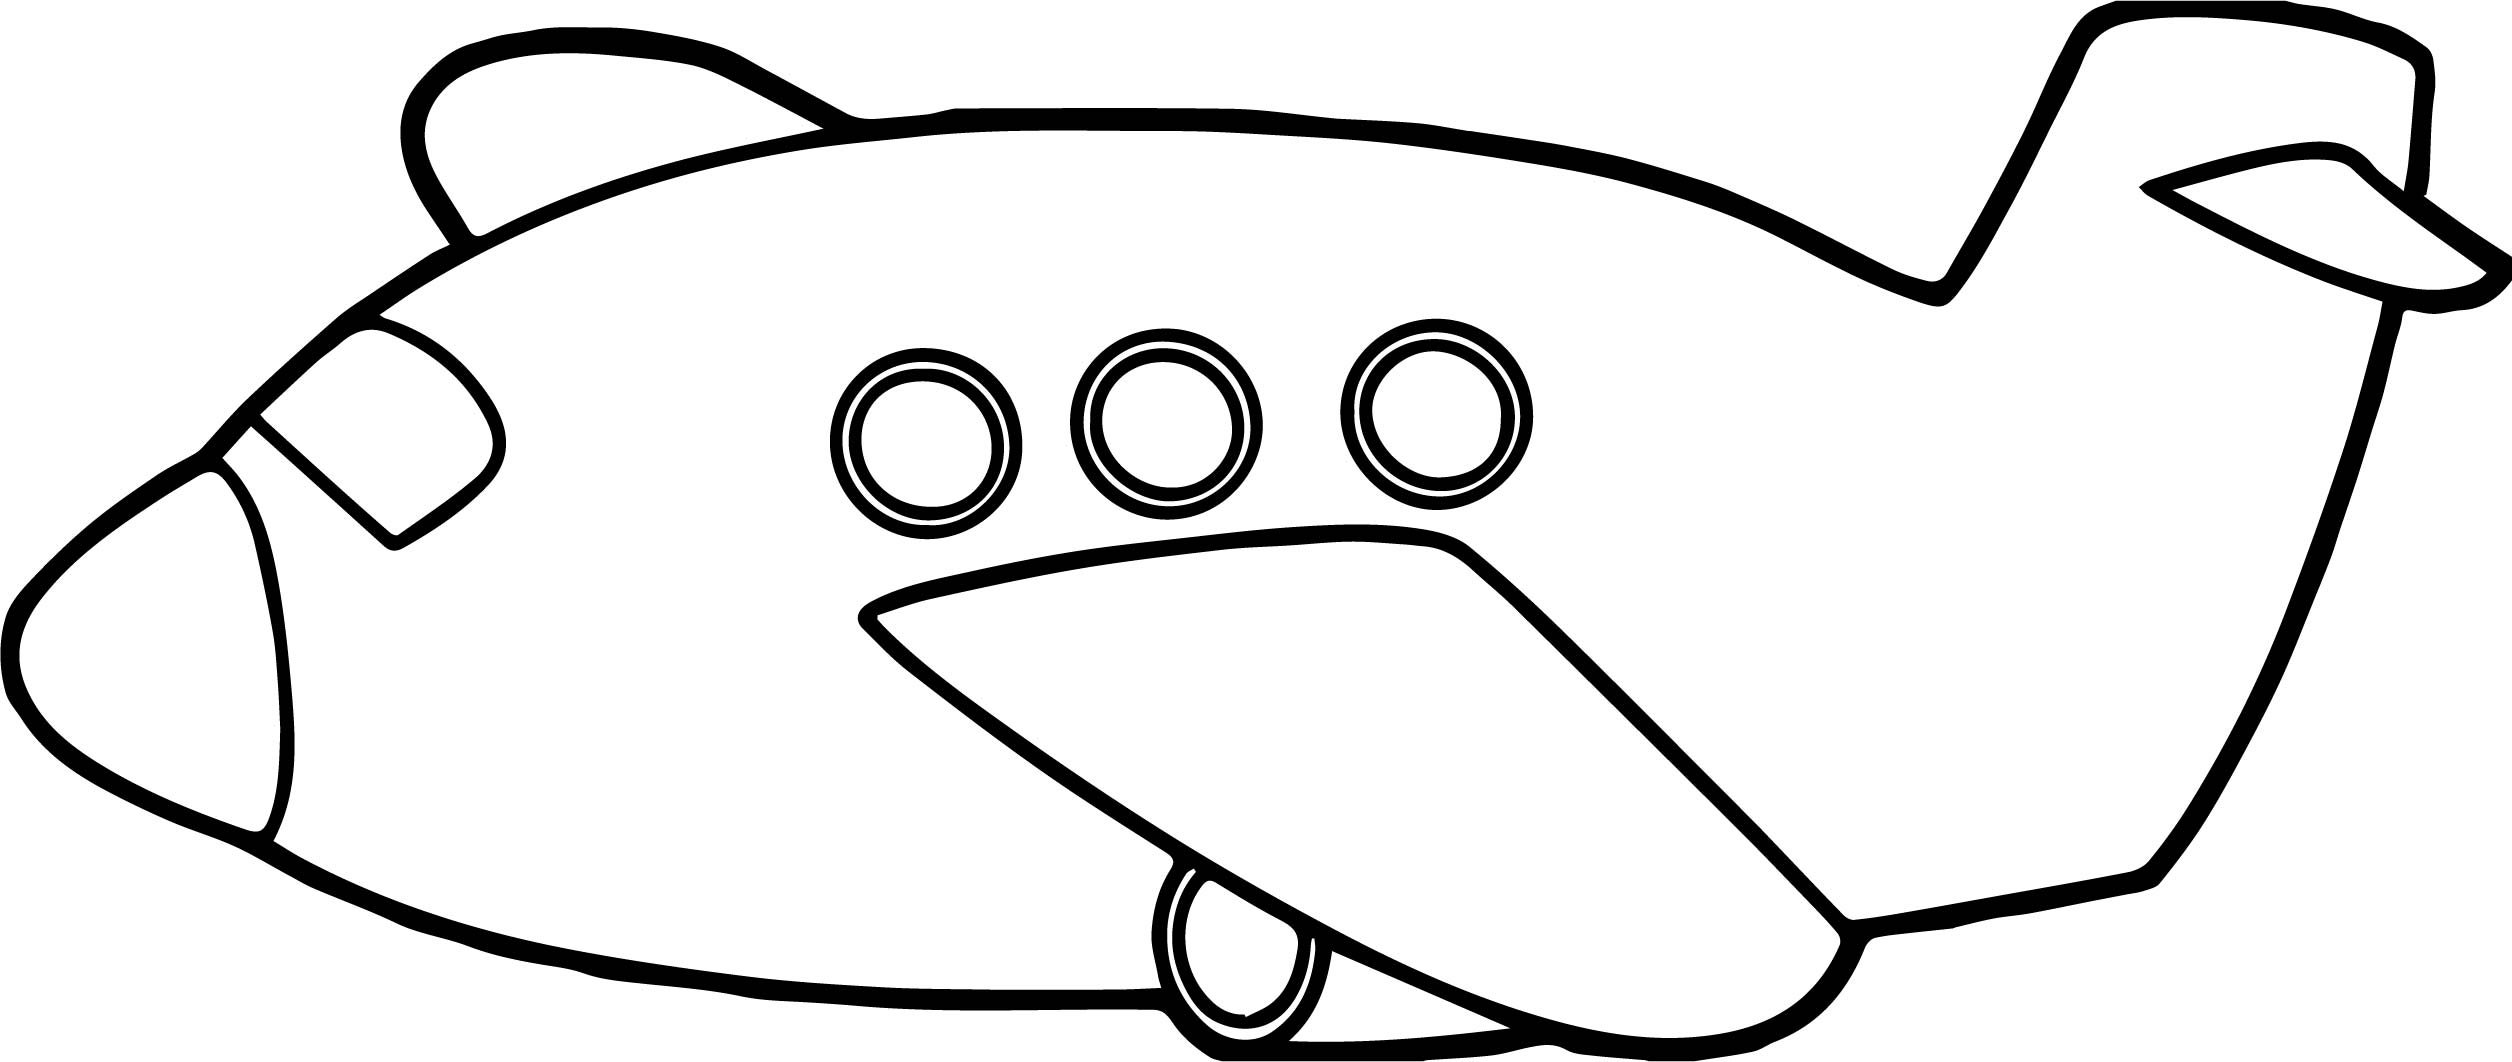 Toy fat airplane coloring page for Airplane coloring page printable